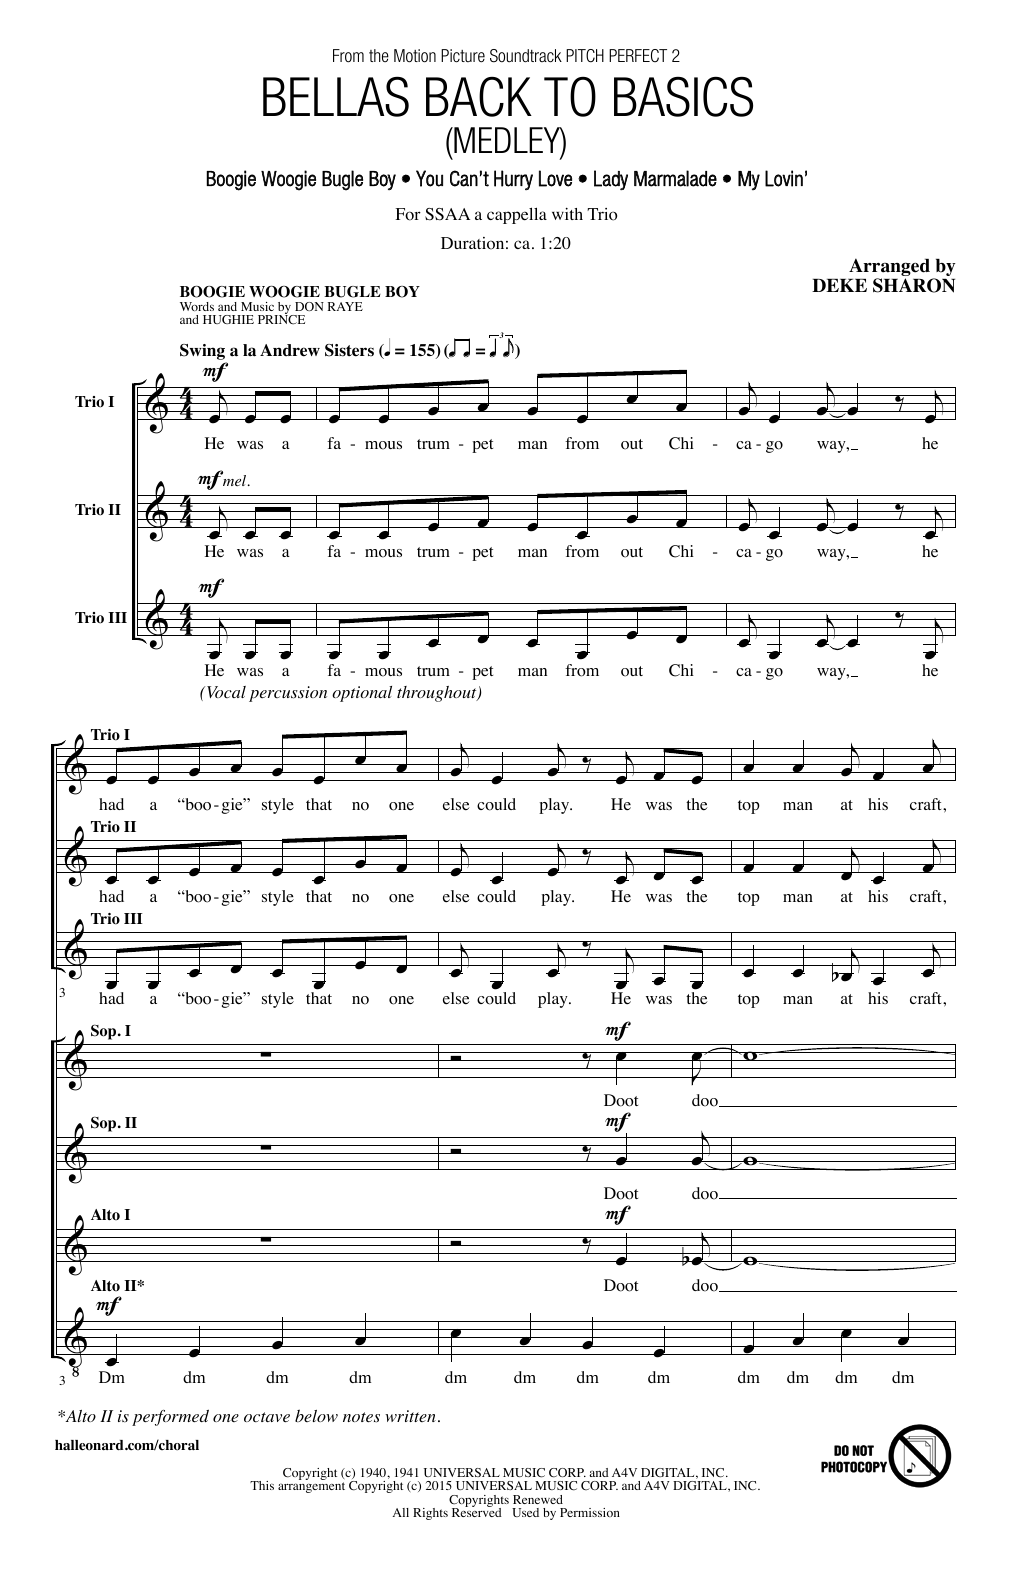 Bellas Back To Basics (Medley) Sheet Music